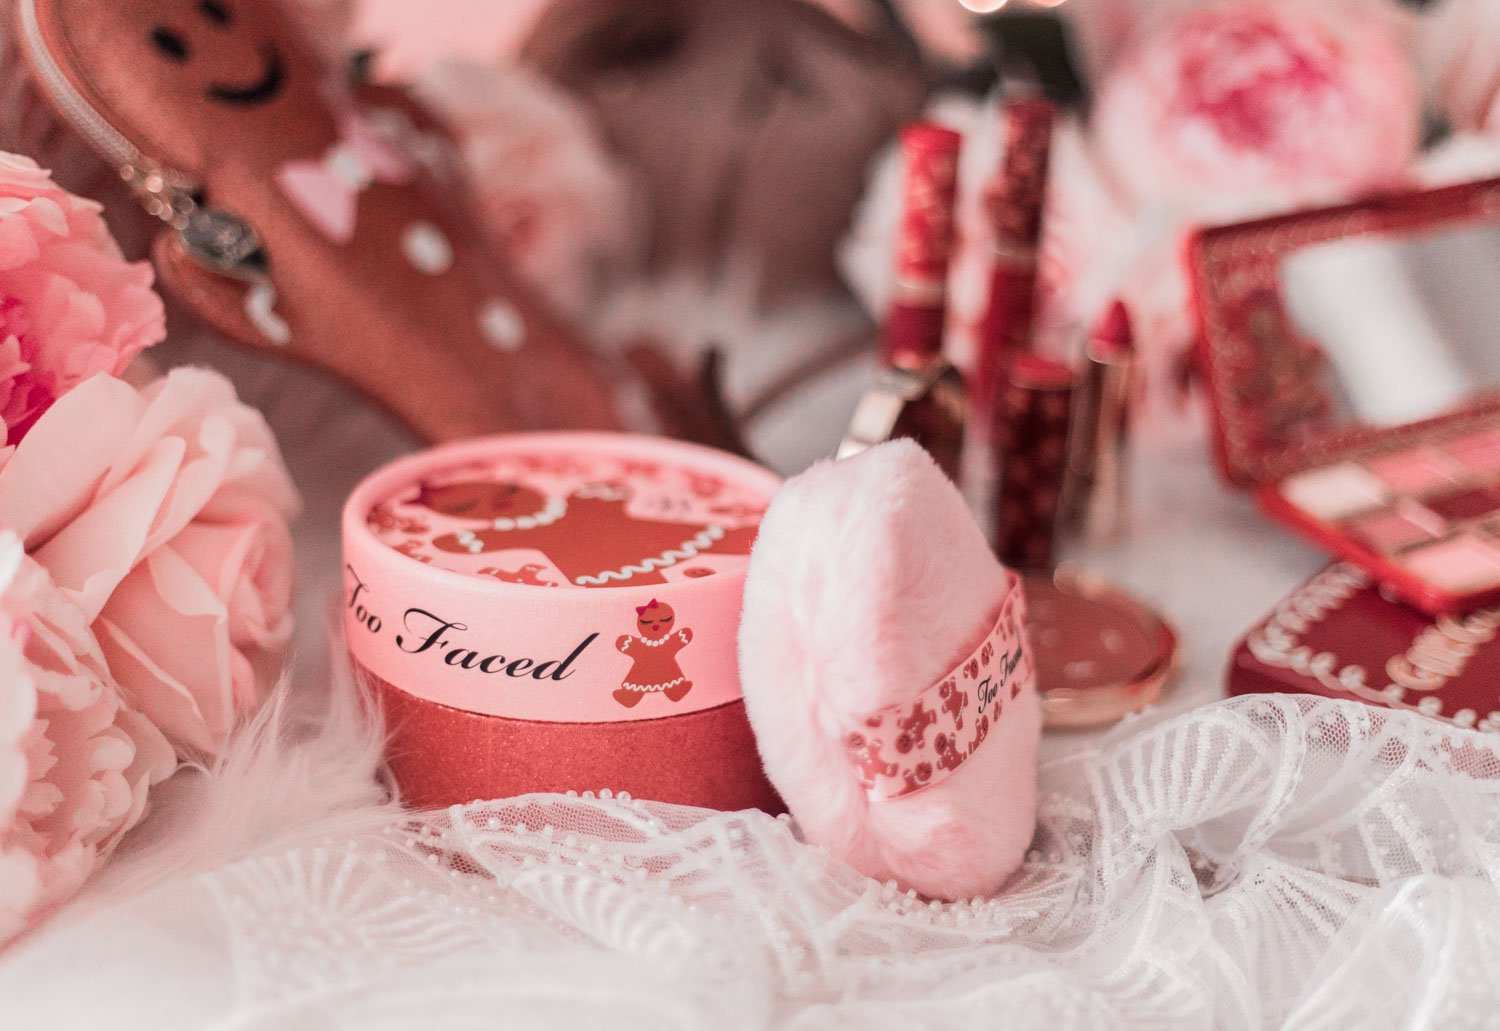 Elizabeth Hugen of Lizzie in Lace shares the too faced holiday gift set for Christmas!